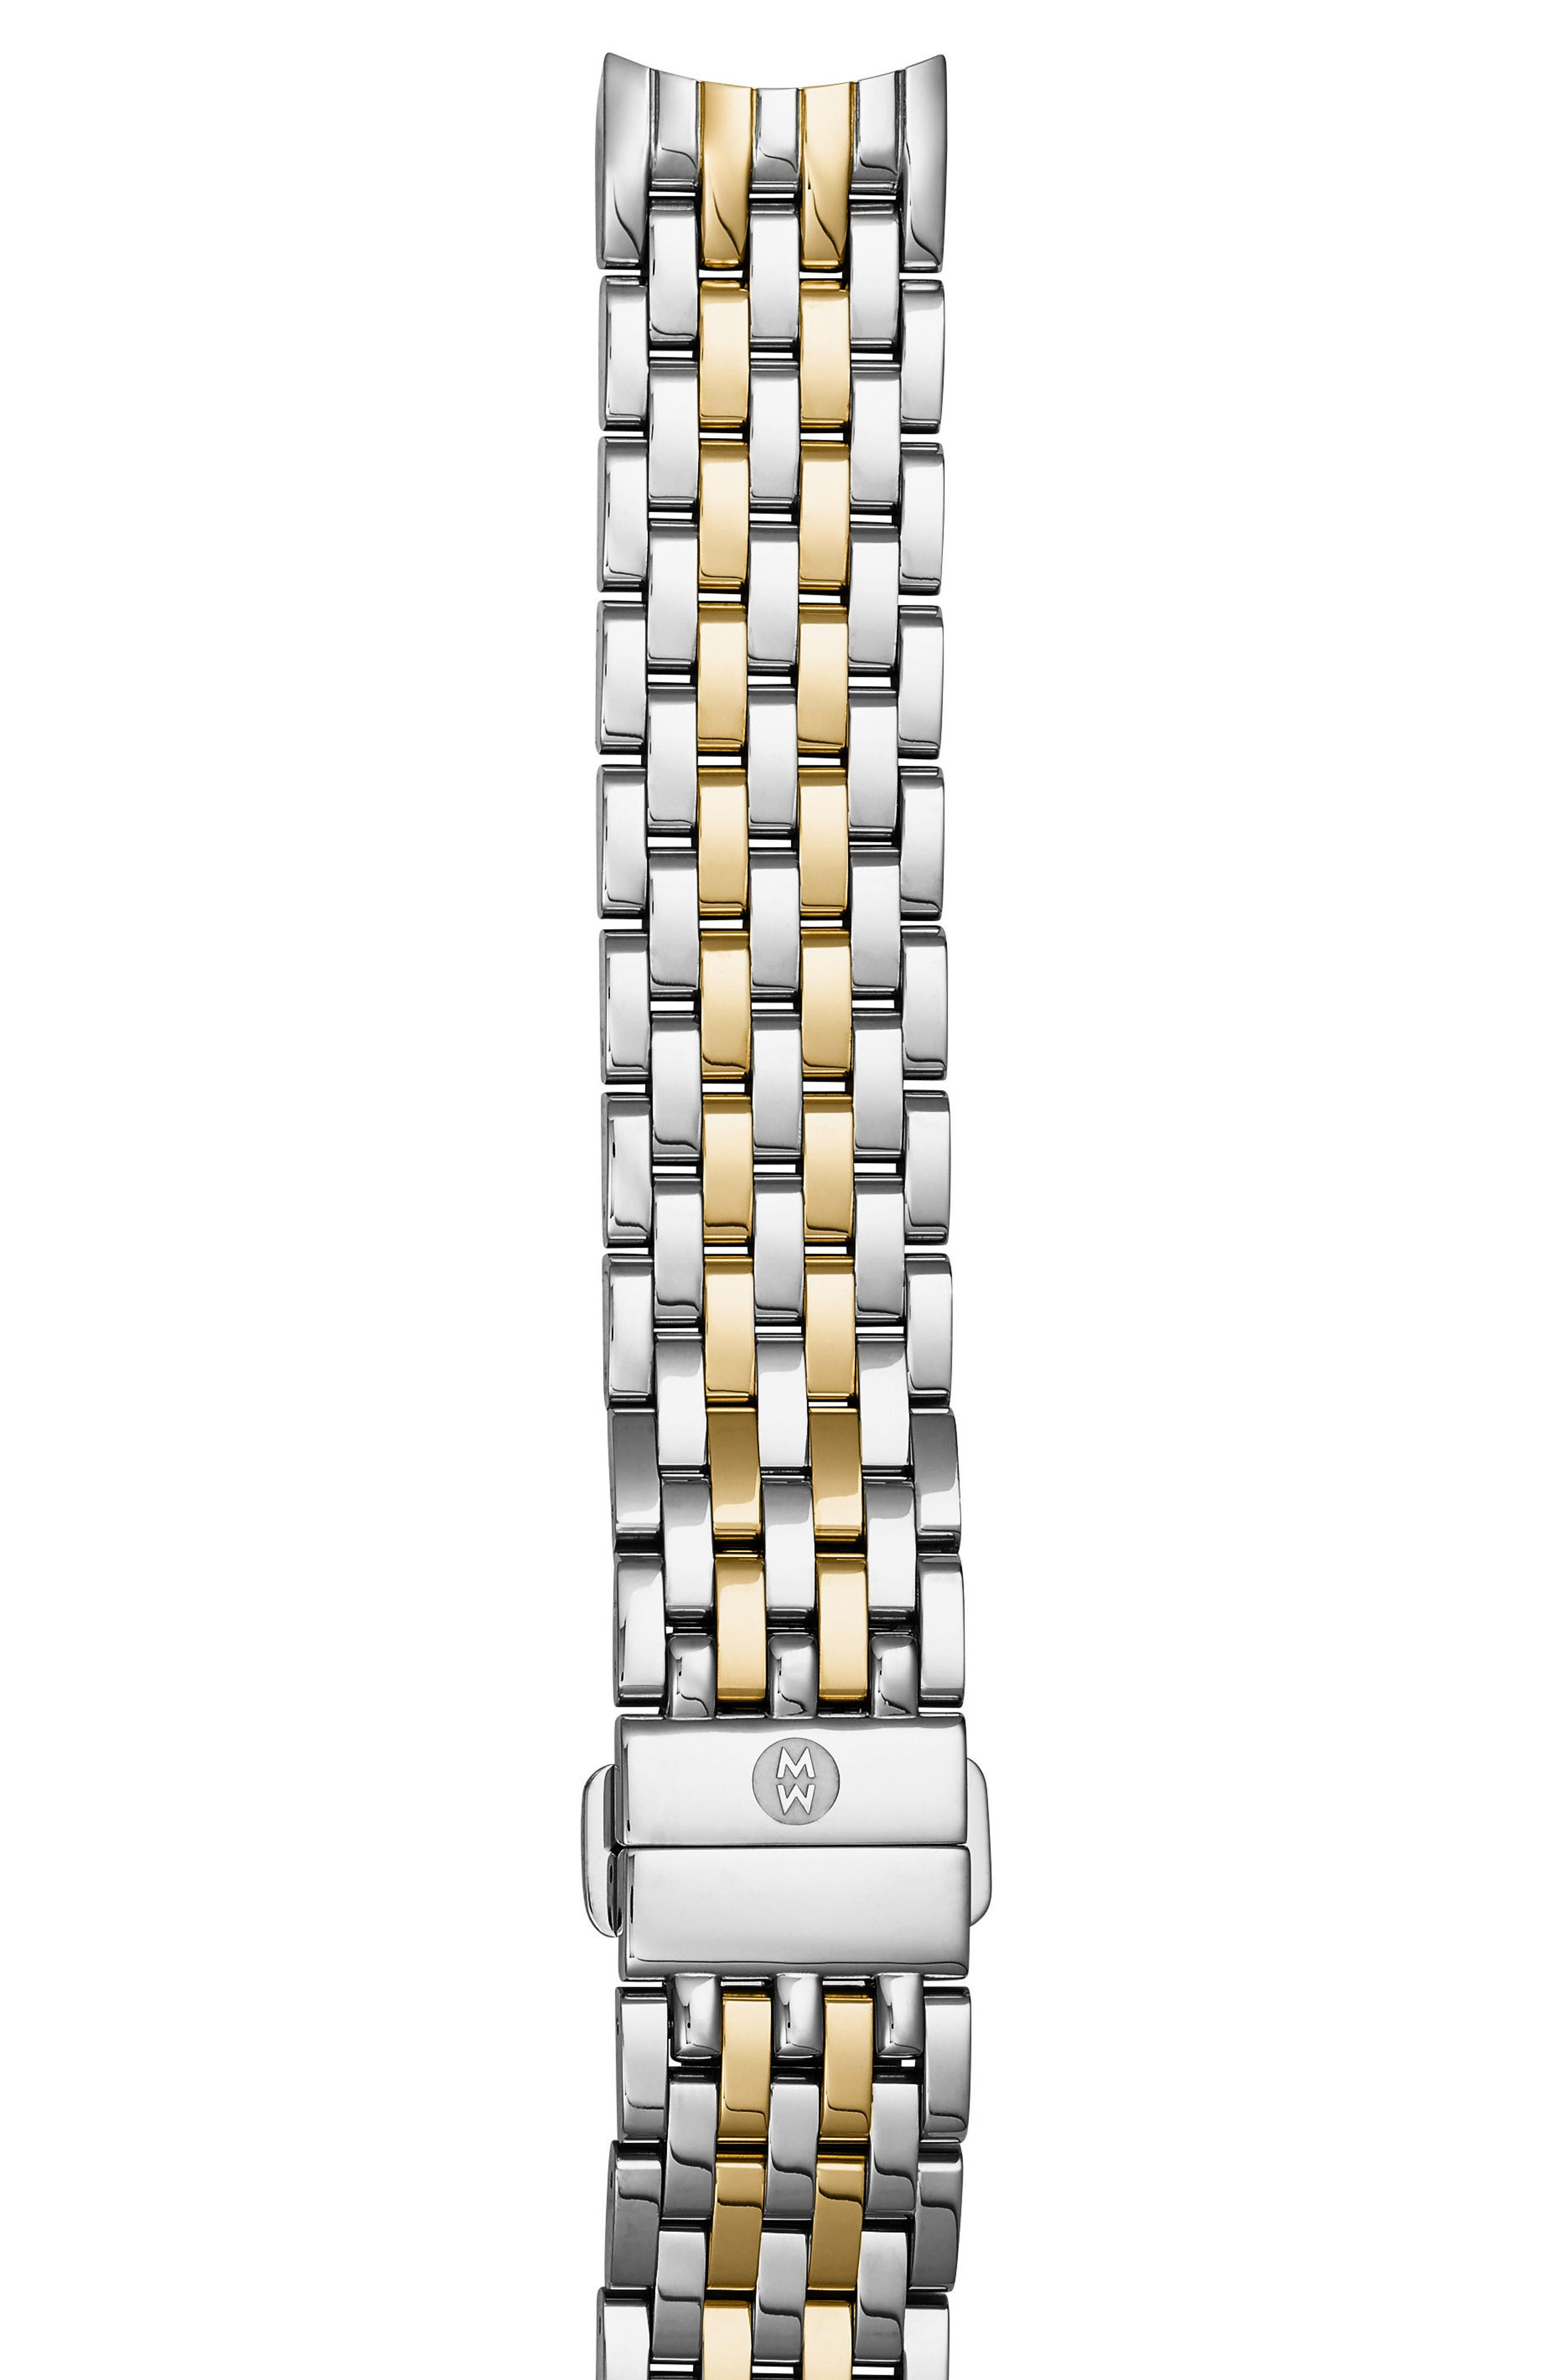 Sidney 18mm Stainless Steel Bracelet Watch Band,                         Main,                         color, Silver/ Gold